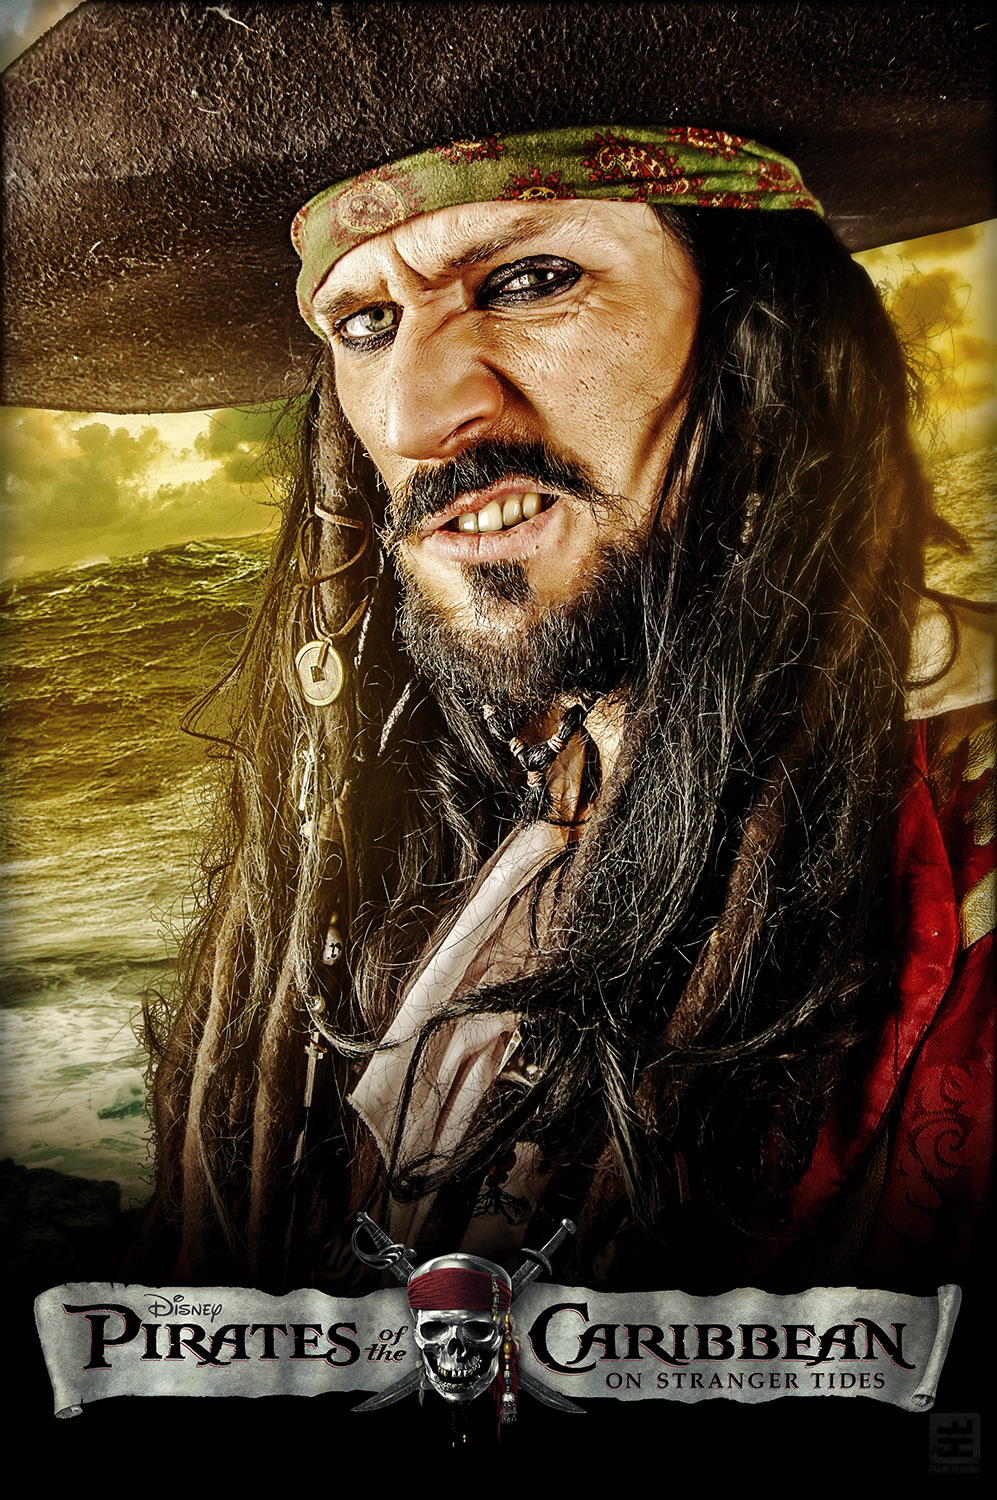 Captain Teague Cosplay. Portret van Teague in poster stijl van de Pirates of the Caribean